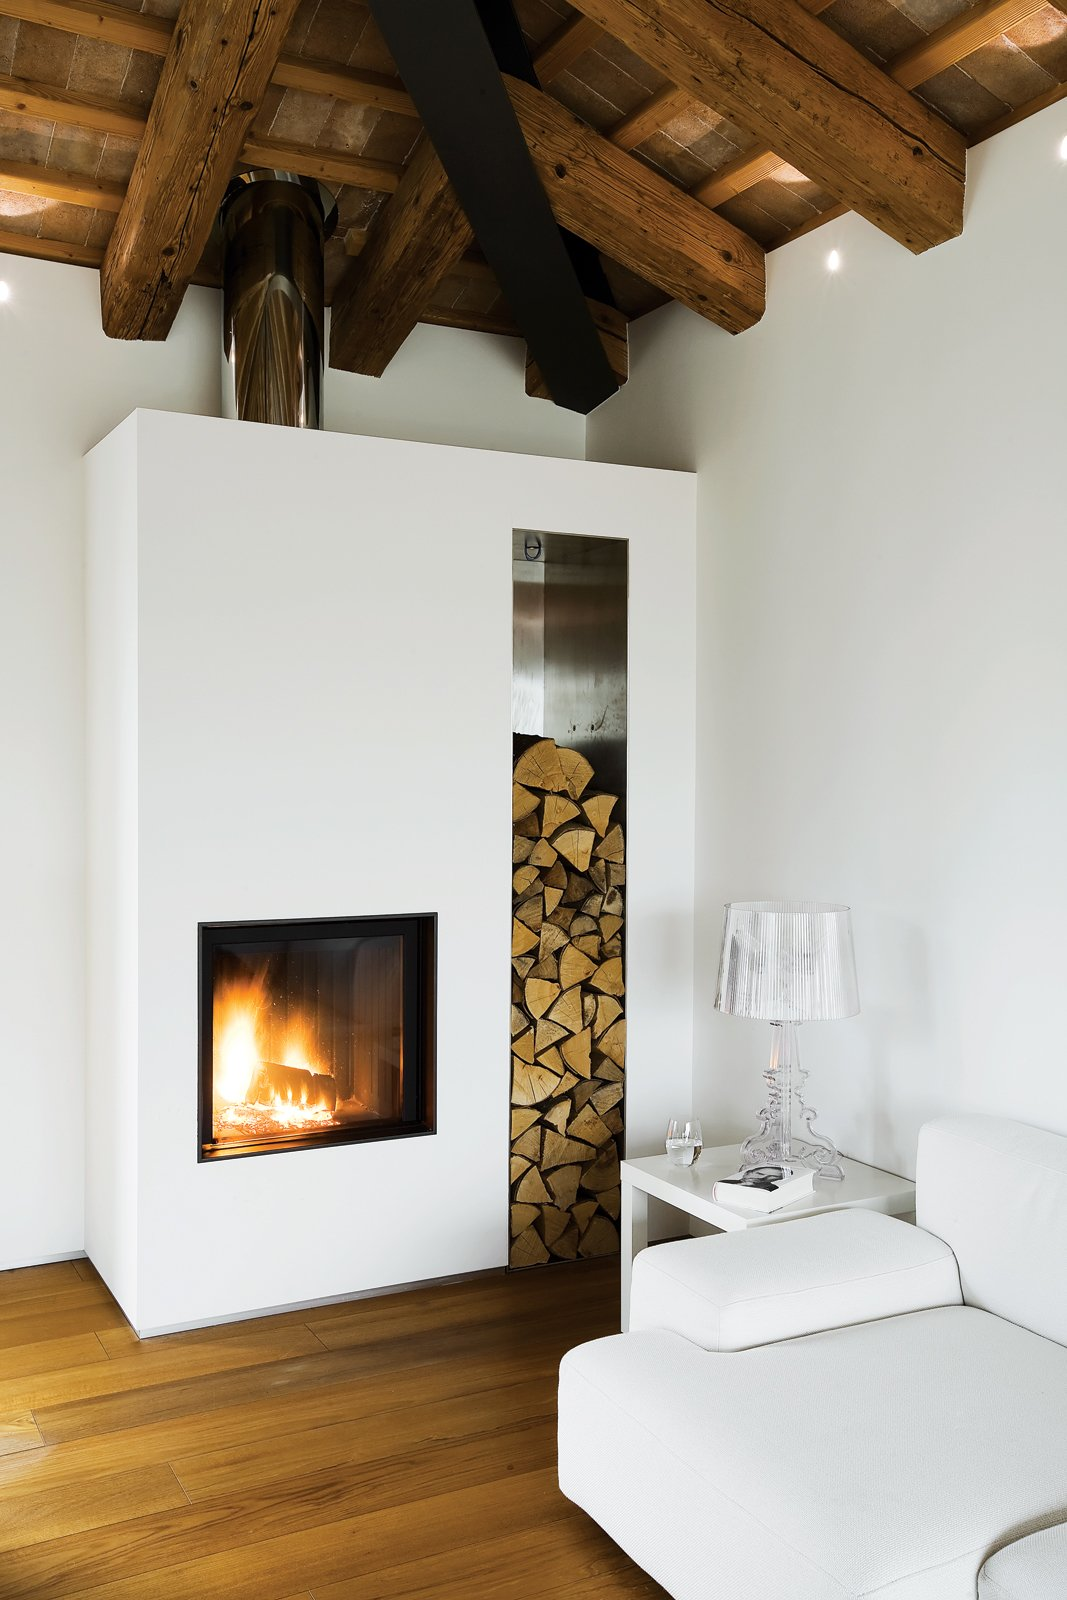 A firewood nice and hearth infuse the interior of a renovated farmhouse in Italy with coziness. Photo by Helenio Barbetta. Tagged: Living Room, Medium Hardwood Floor, End Tables, Sofa, Table Lighting, and Wood Burning Fireplace.  97+ Modern Fireplace Ideas by Dwell from A Renovated Farmhouse in Northern Italy